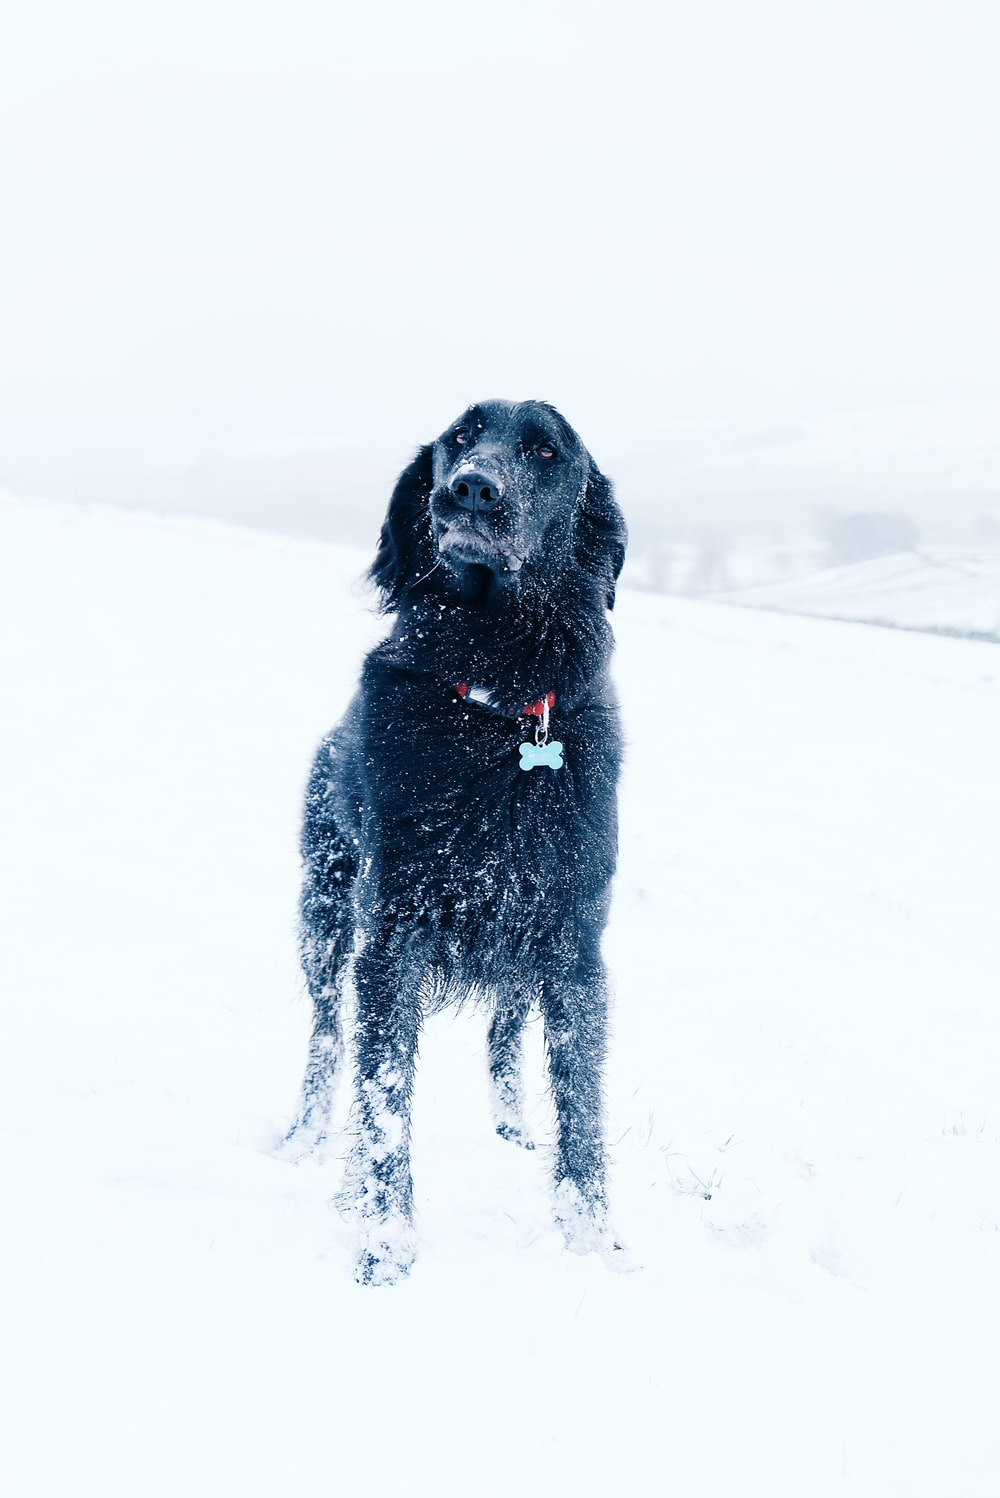 long-coated black dog standing on snow field